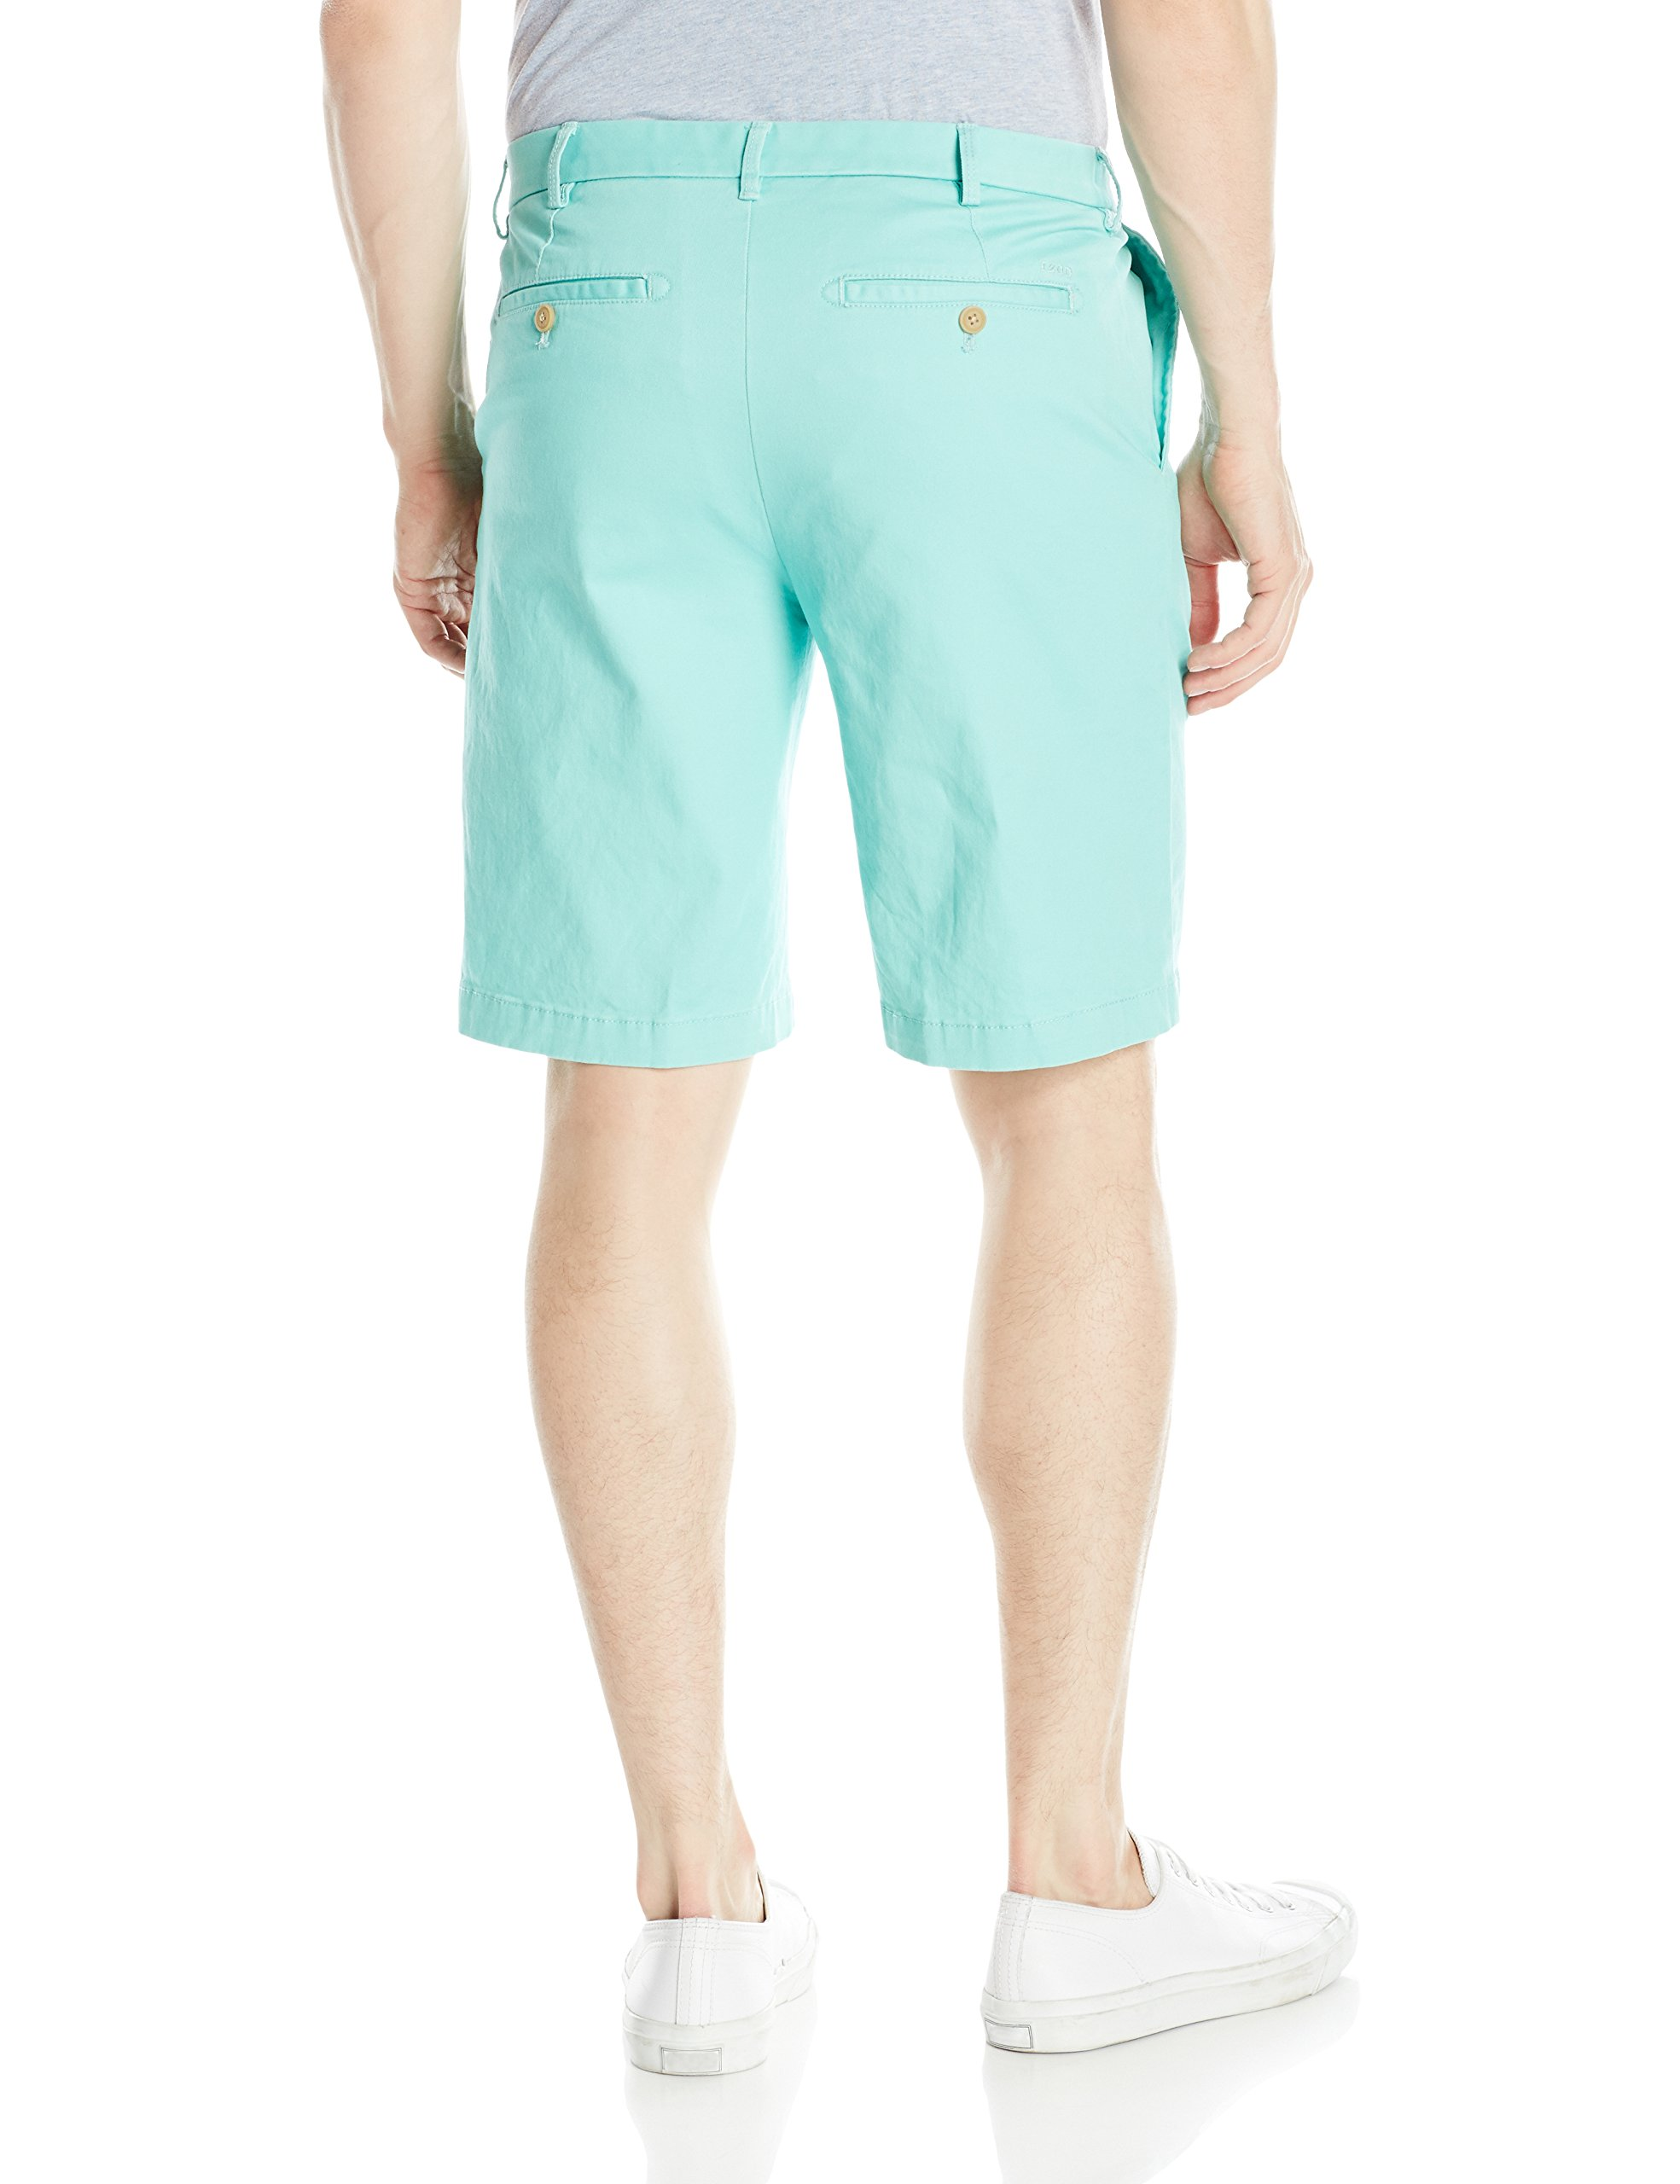 New-IZOD-Mens-Shorts-Green-Size-32-Saltwater-Stretch-Chino-Cascade-Flat-55-311 thumbnail 2